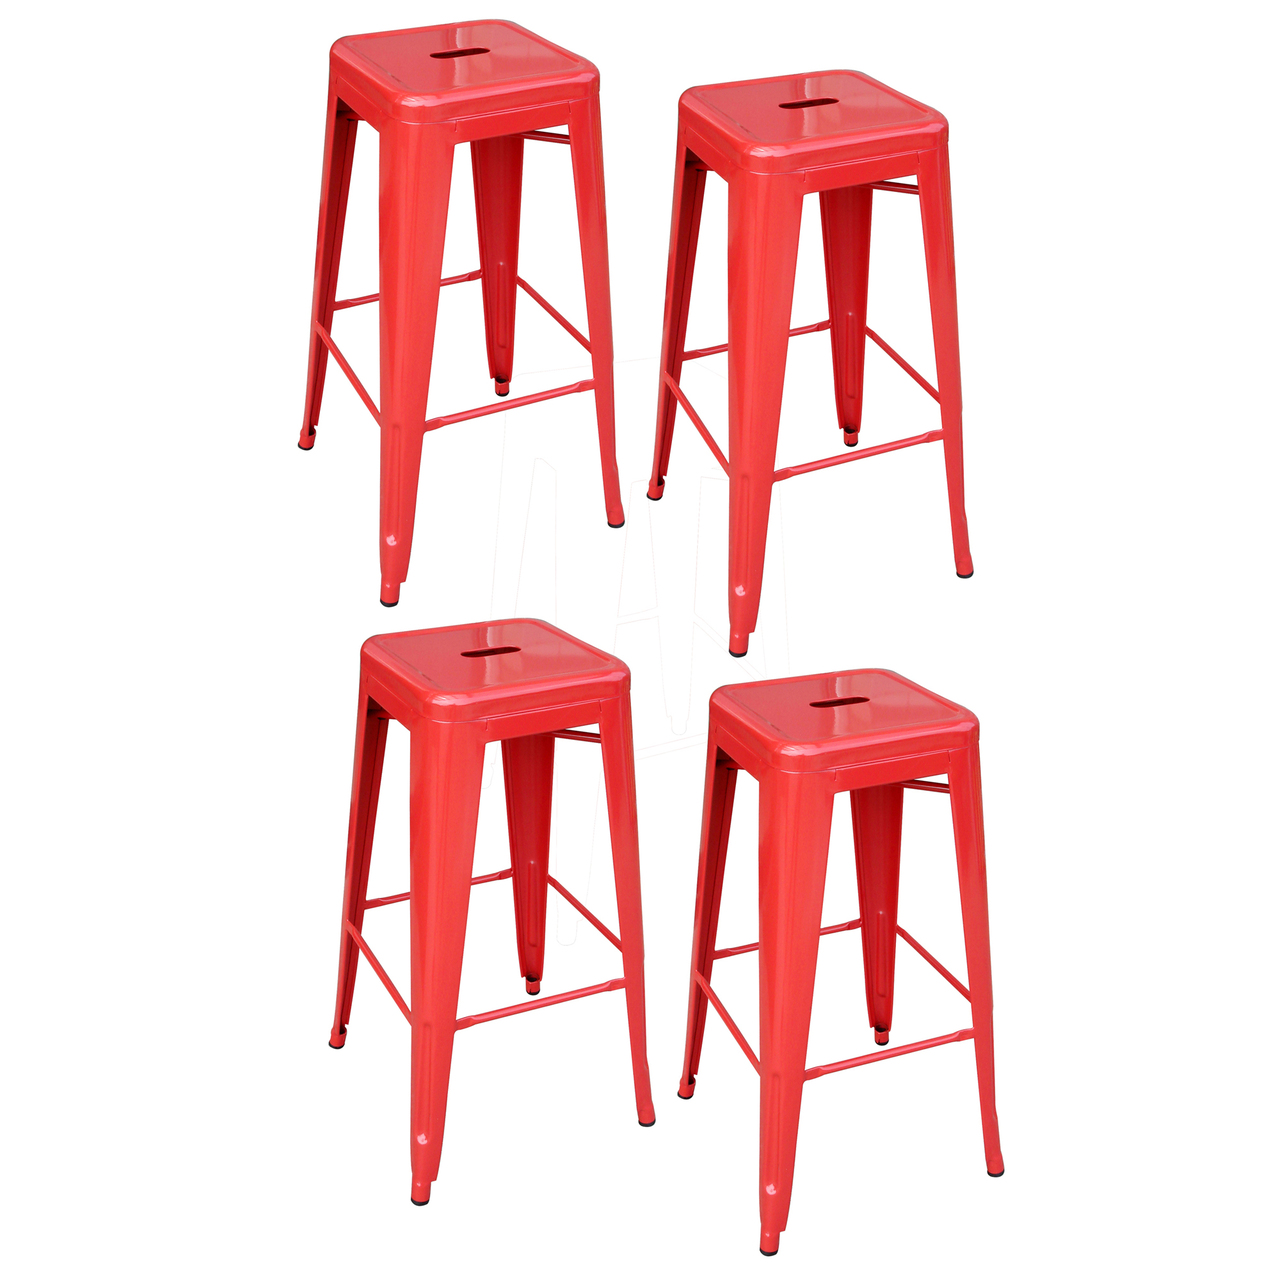 AmeriHome BS030RSET 4 Piece 30 Inch Metal Bar Stool Set - Red